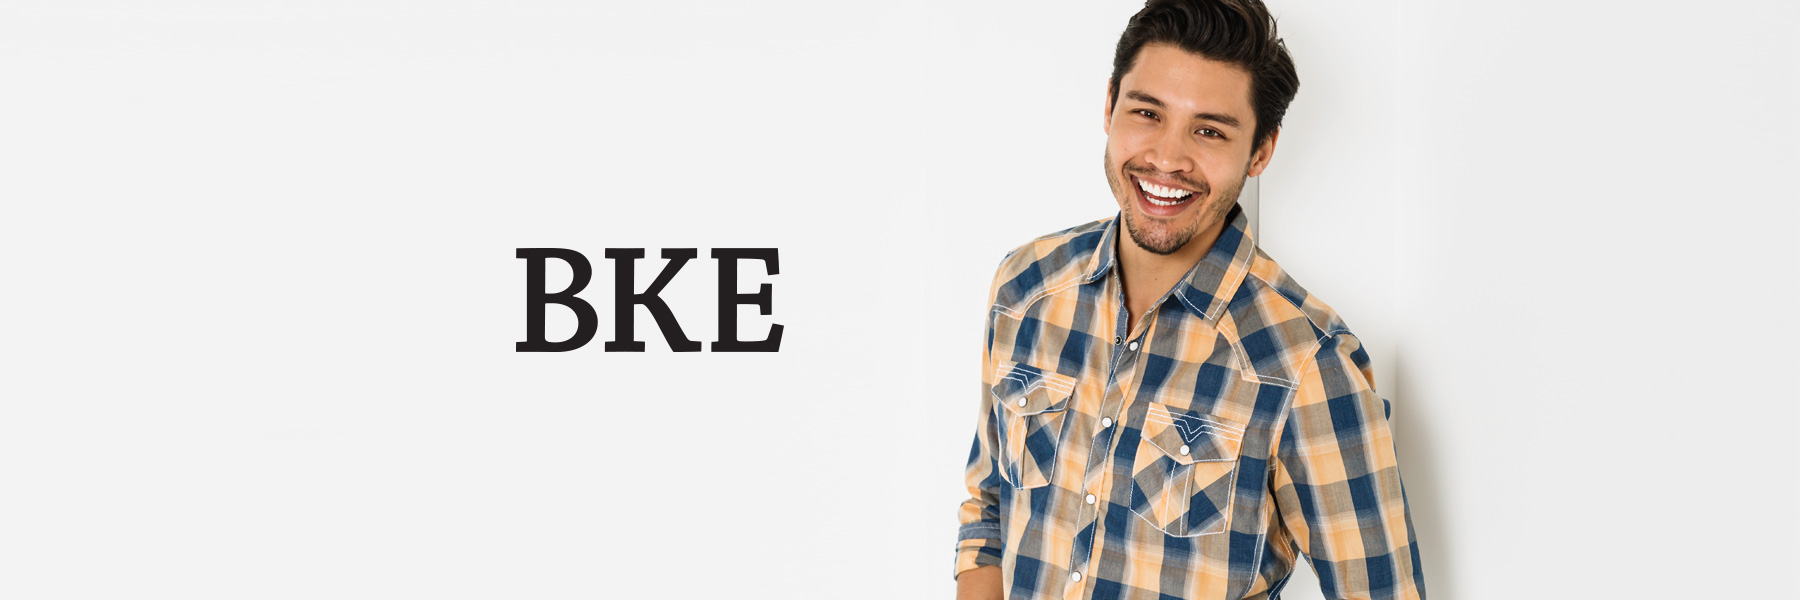 Shop Men's BKE - Guy wearing a blue and yellow plaid BKE shirt